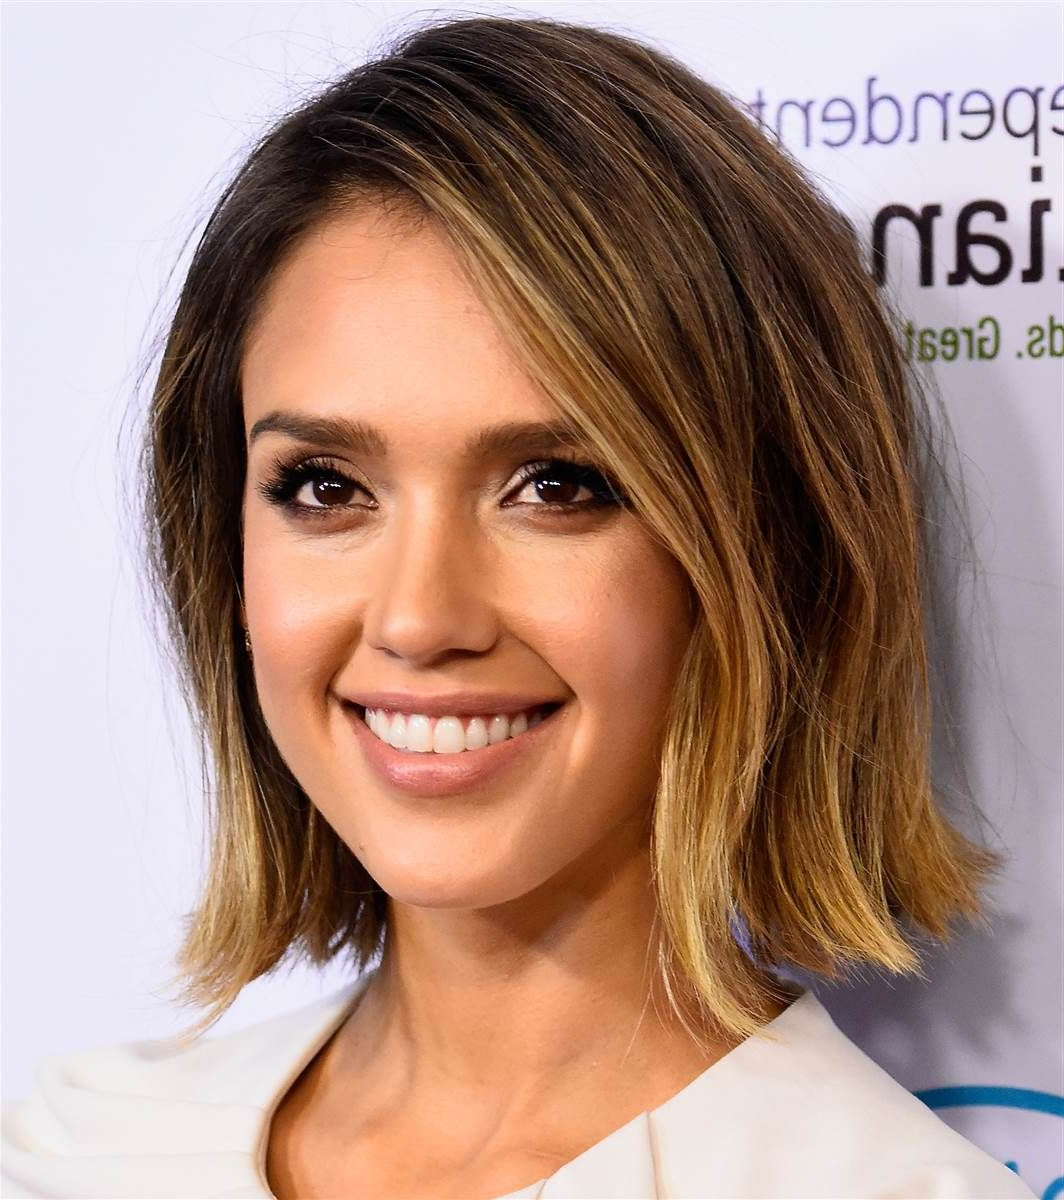 Taylor Swift Turns Her Bob Into A Shag — See The New Haircut With Regard To Jessica Alba Short Hairstyles (View 21 of 25)